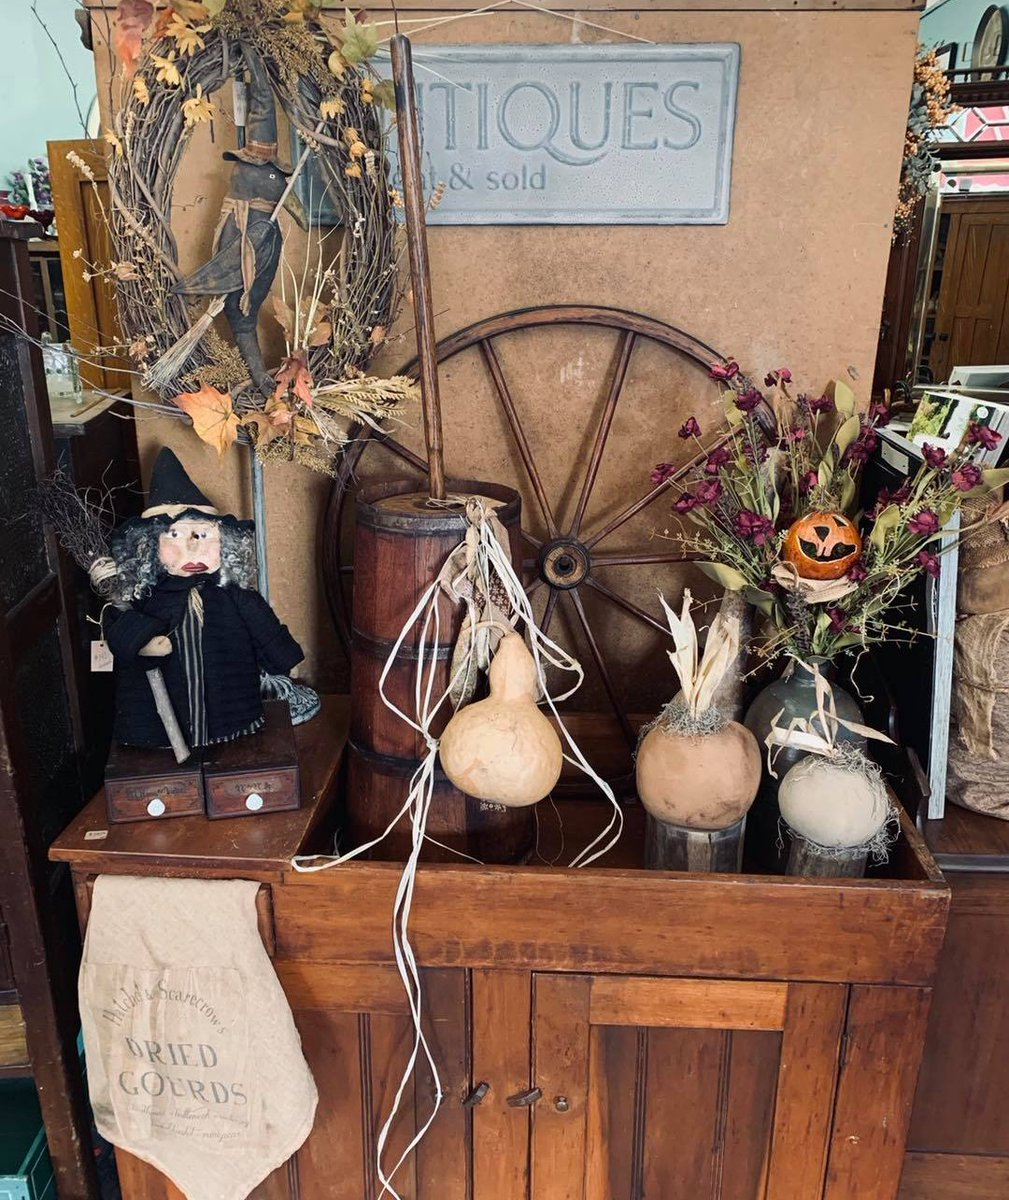 Looking for a unique Antique shop? Stop by Porch Swing Days Antique Shop located at 97 E. Second Street. A Locally Owned and Operated Shop  in Historic Downtown Chillicothe. They are the Home of Folk Art by David. #shoplocal #antiques #OhioFindItHere